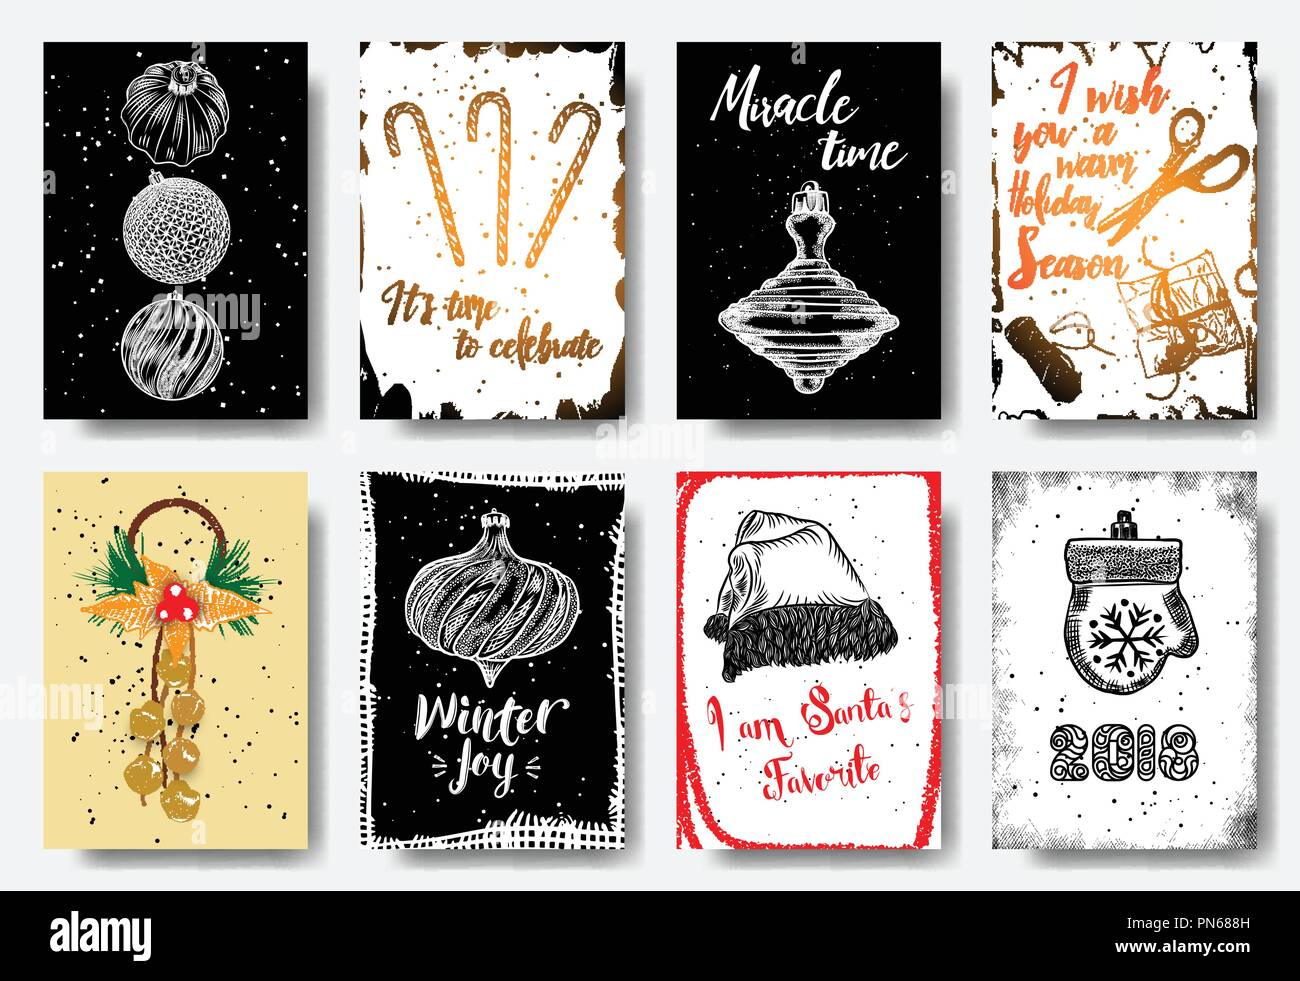 Christmas card tags set, hand drawn style. It's time to celebrate, Mircle time, I wish you a warm Holiday Season, Winter Joy, I am Santa's Favorite, 2 - Stock Vector